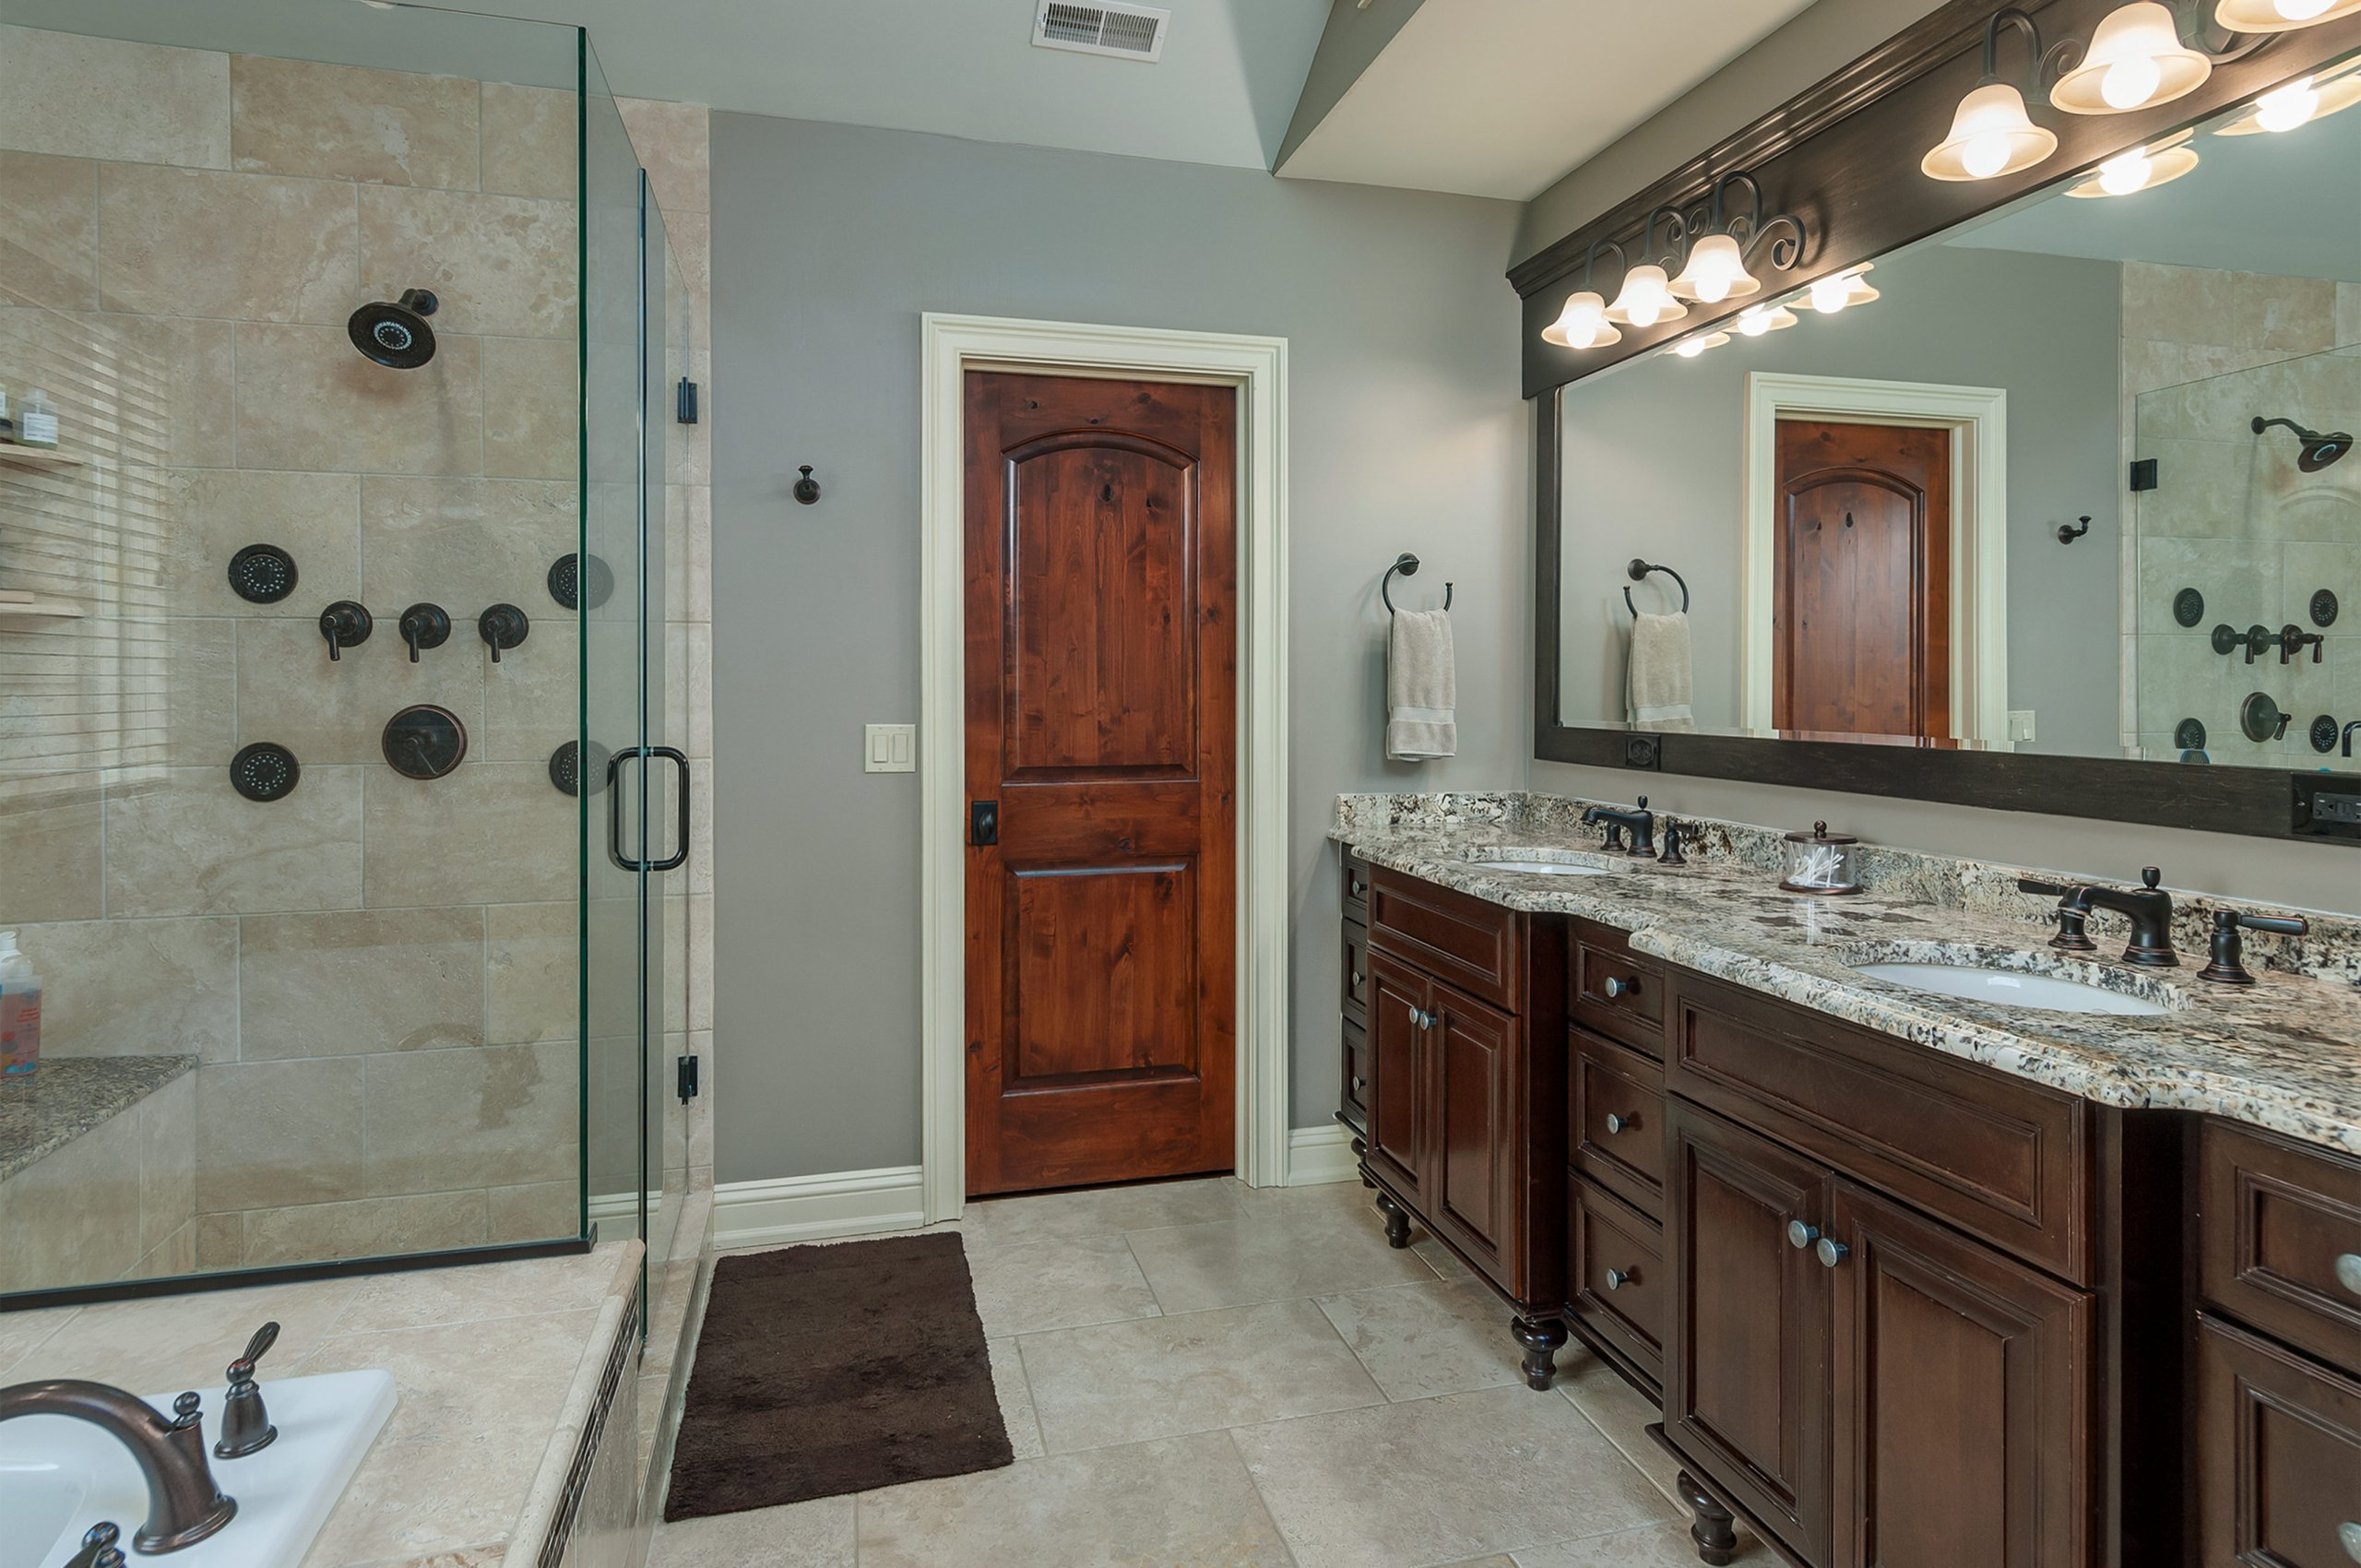 Modern, spacious master bathroom in up scale home.